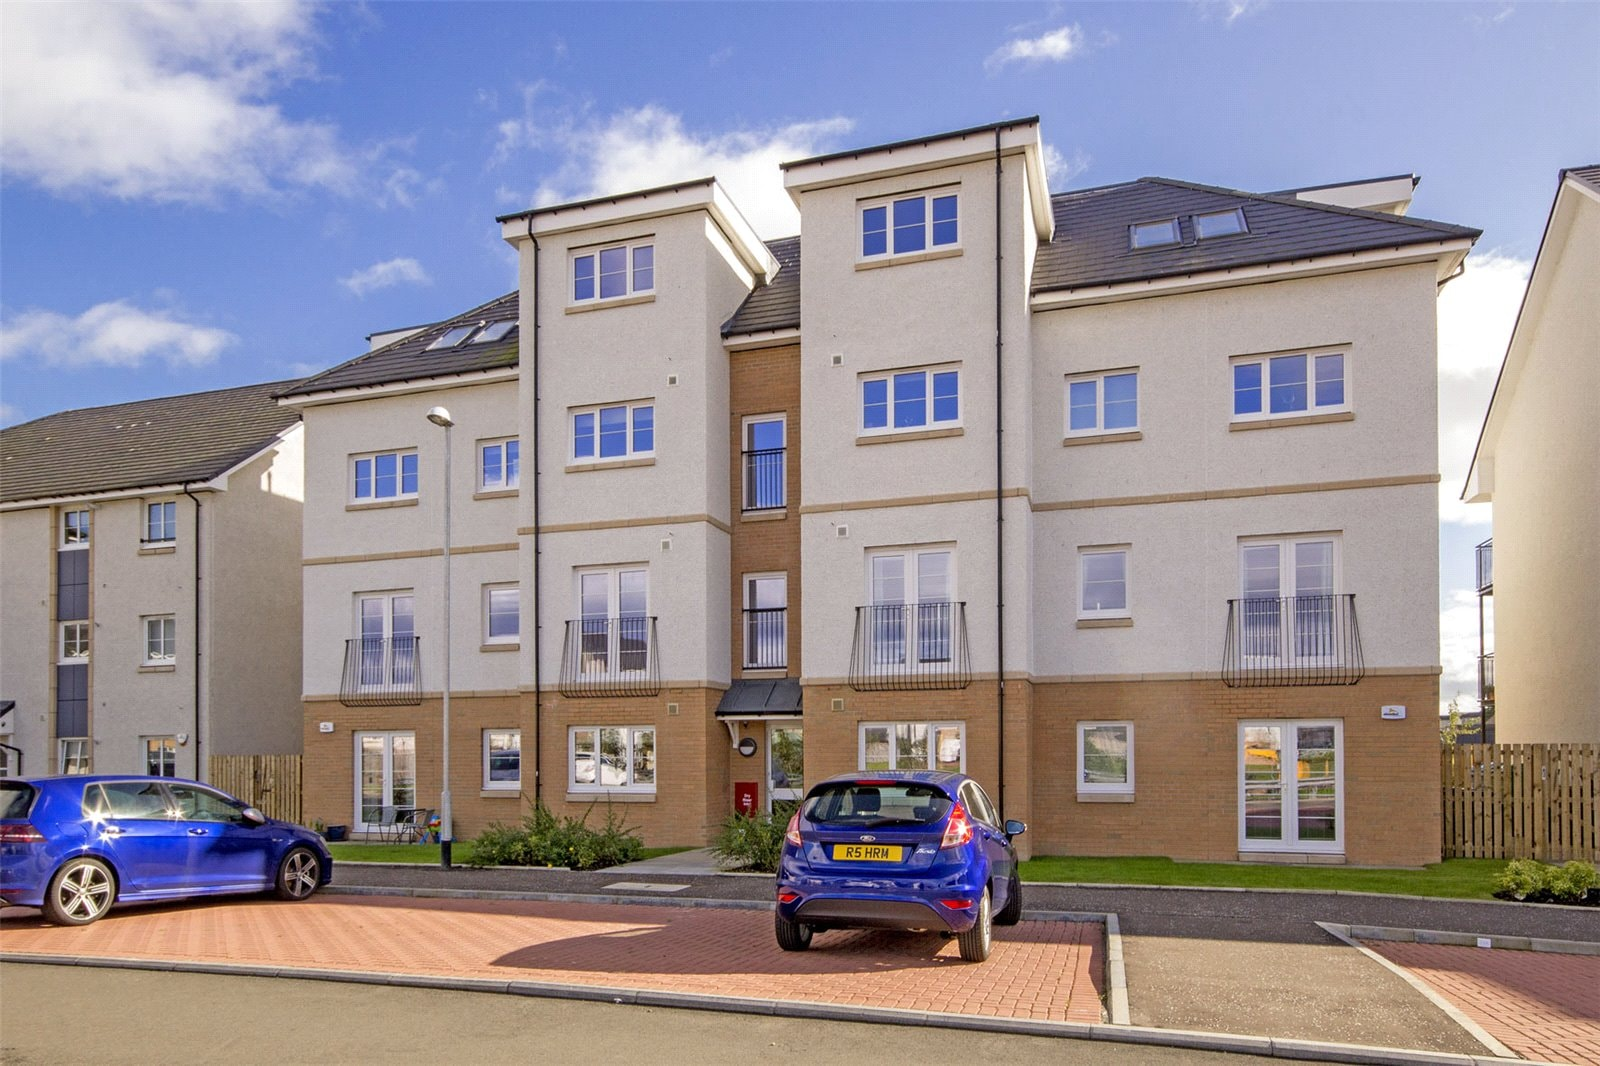 Only four flats left in this stunning development!